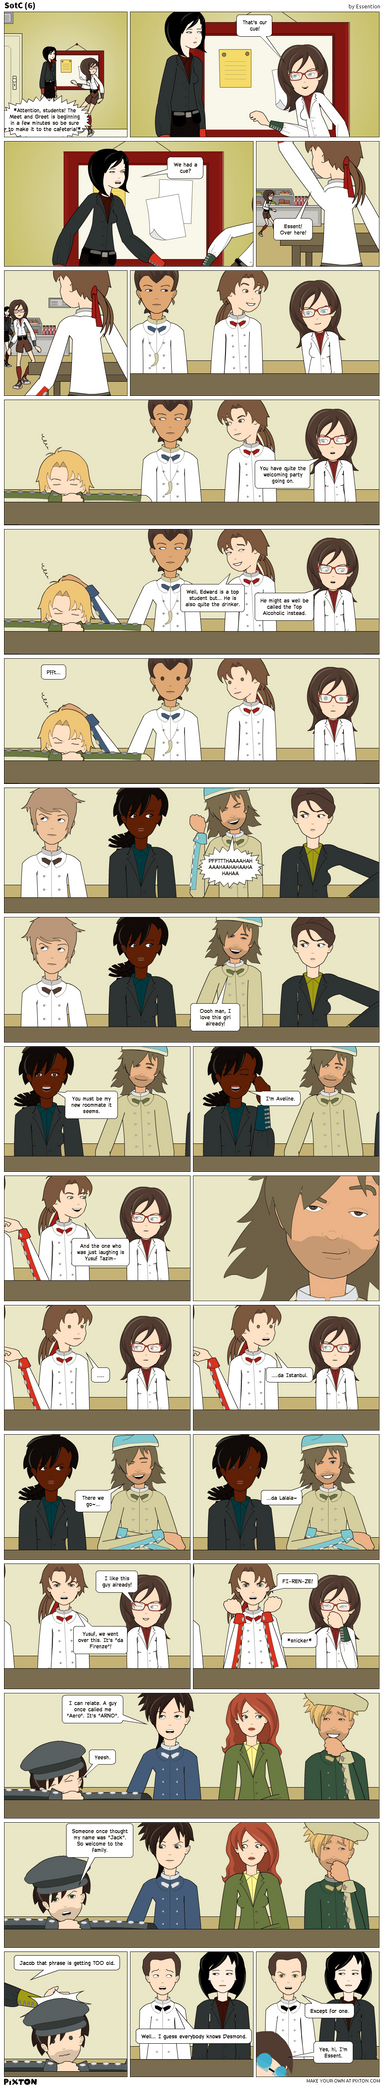 School of the Creed (6) by GennaCase1101